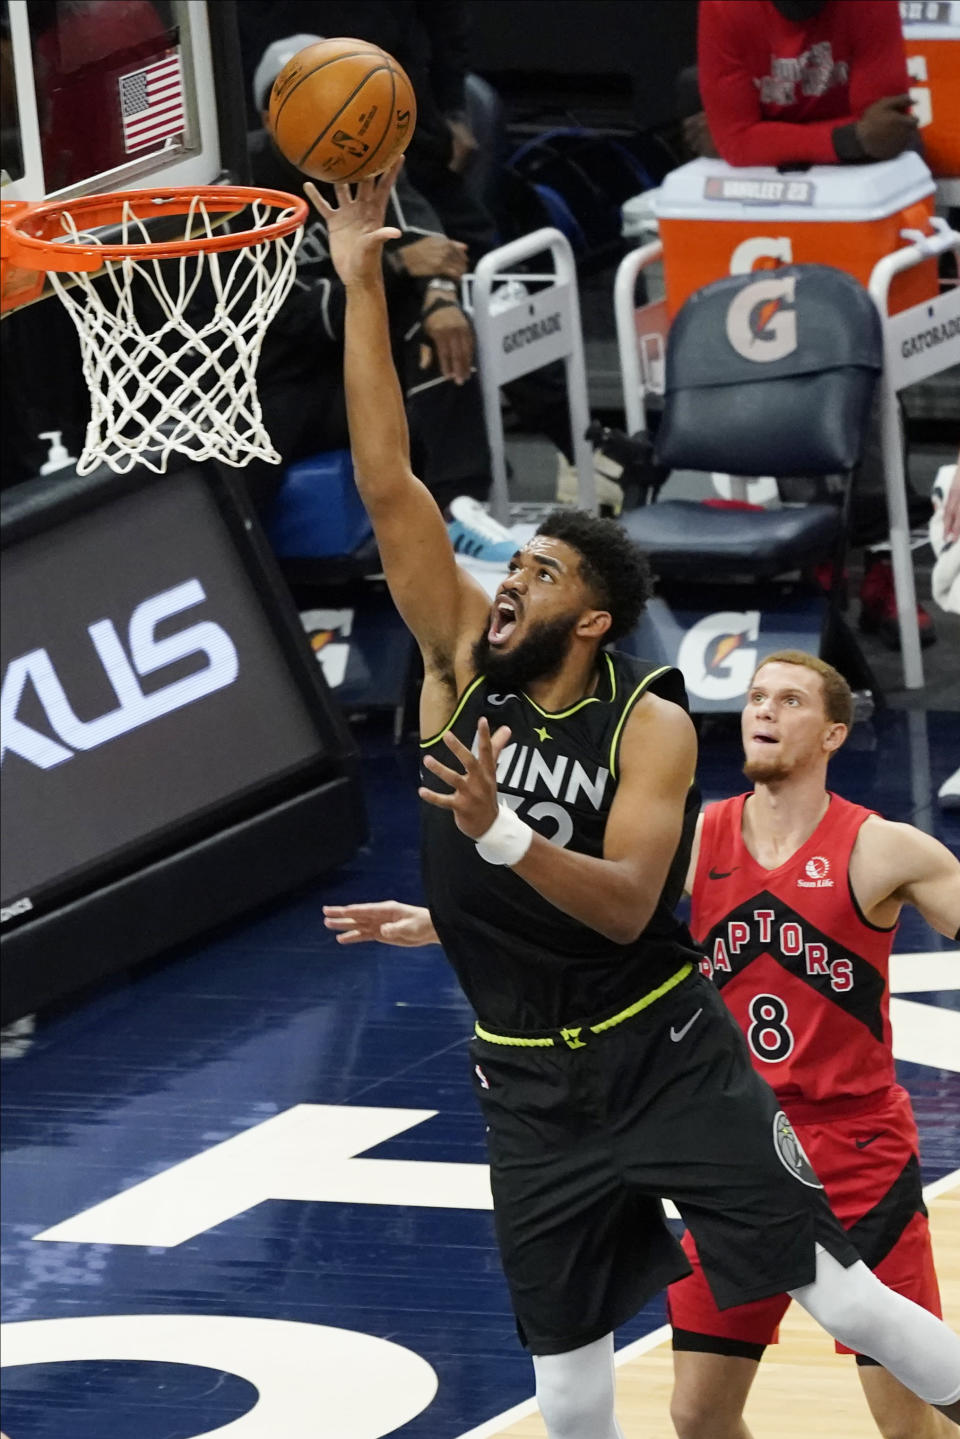 Minnesota Timberwolves' Karl-Anthony Towns (32) lays up a shot as Toronto Raptors' Malachi Flynn (8) watches during the second half of an NBA basketball game Friday, Feb. 19, 2021, in Minneapolis. (AP Photo/Jim Mone)